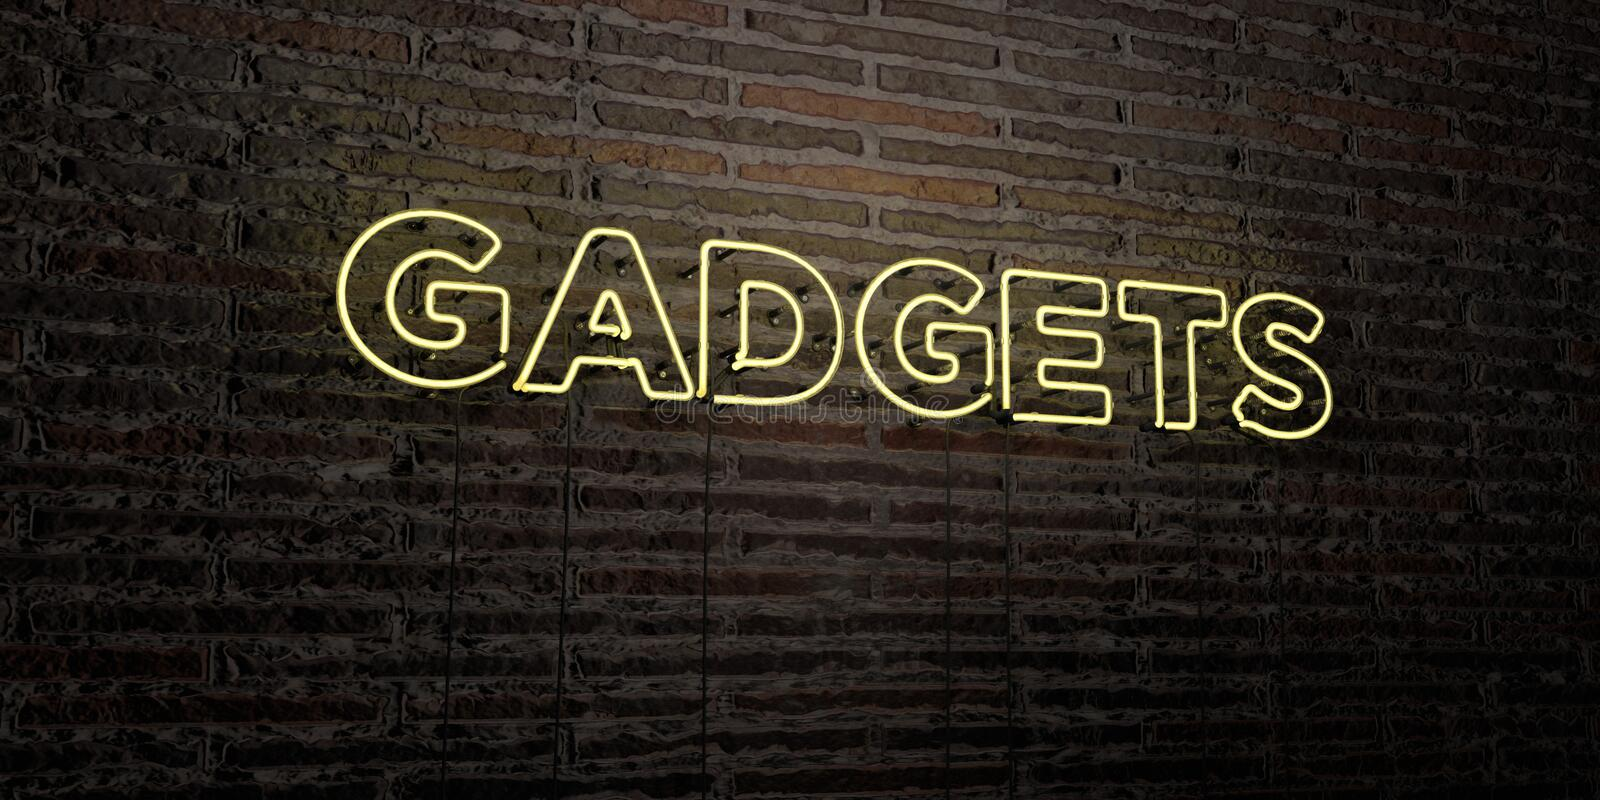 GADGETS -Realistic Neon Sign on Brick Wall background - 3D rendered royalty free stock image royalty free illustration